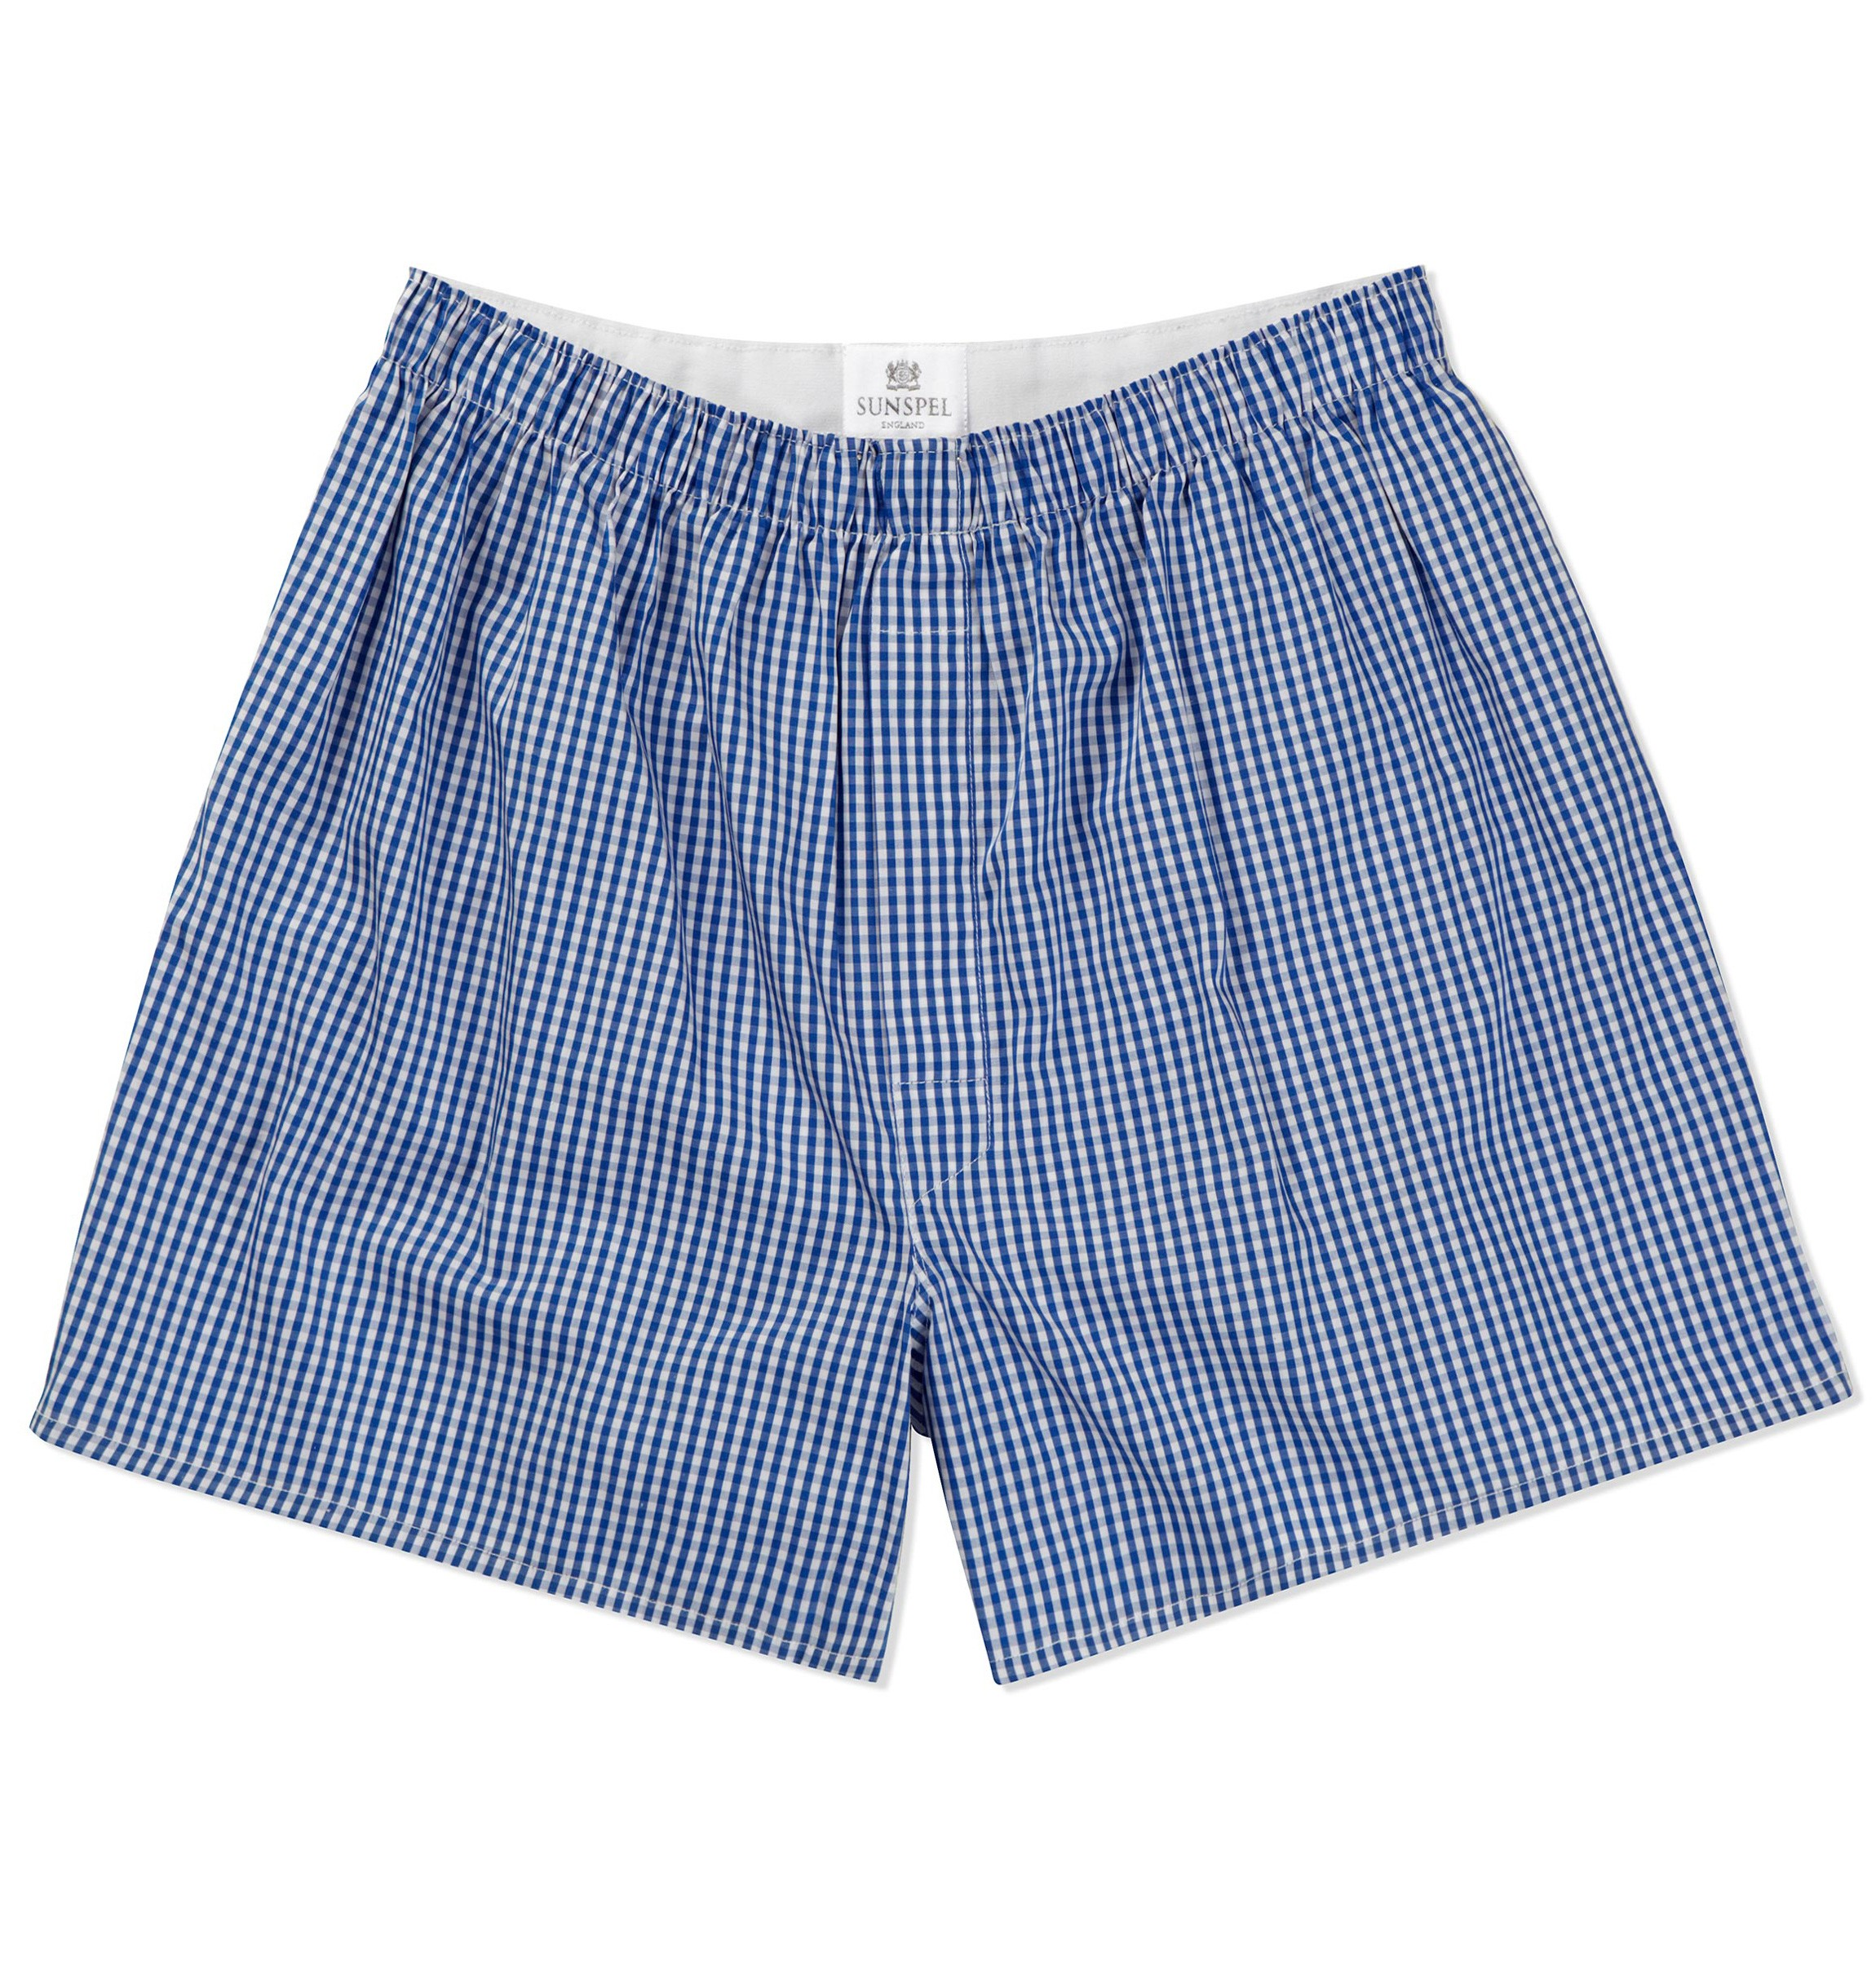 Sunspel Classic Cotton Boxer Shorts In Blue For Men Lyst